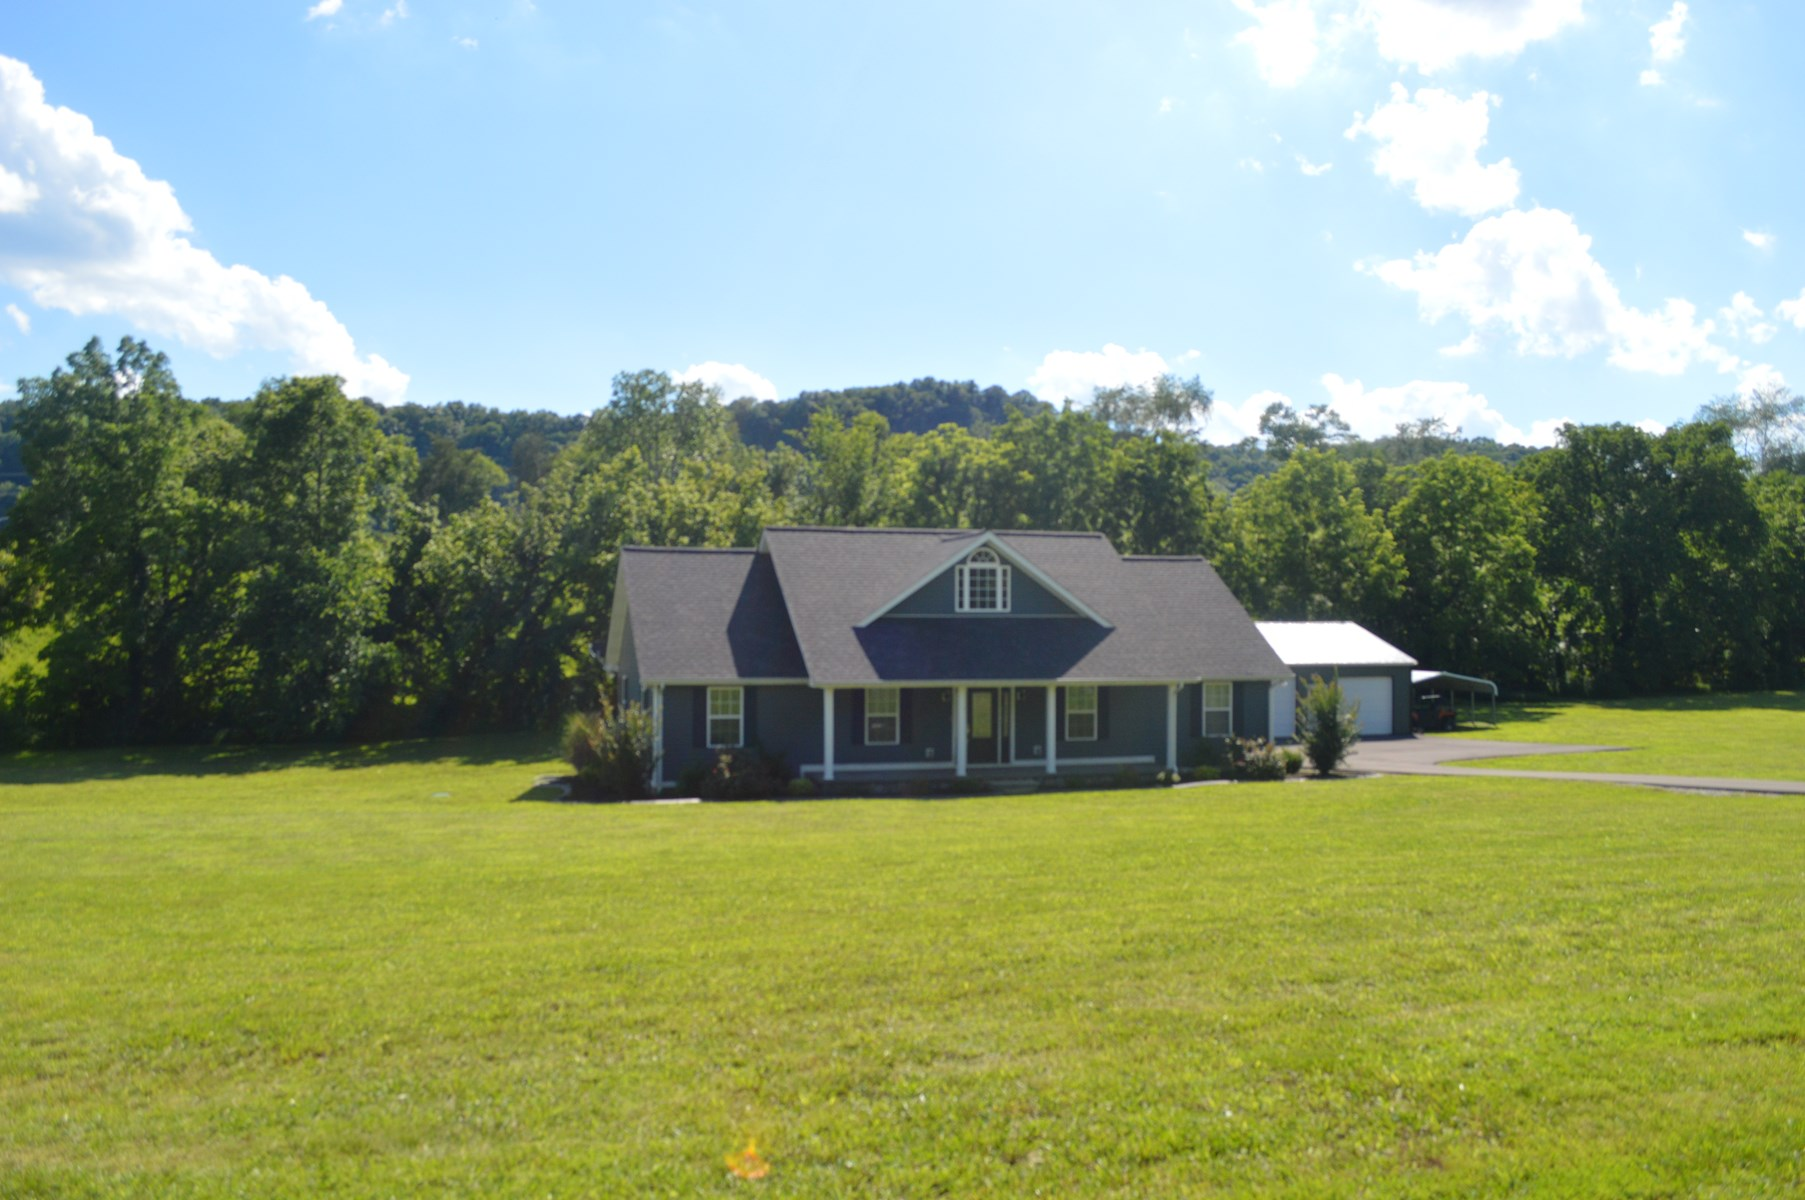 Country home for sale, Burkesville, Kentucky